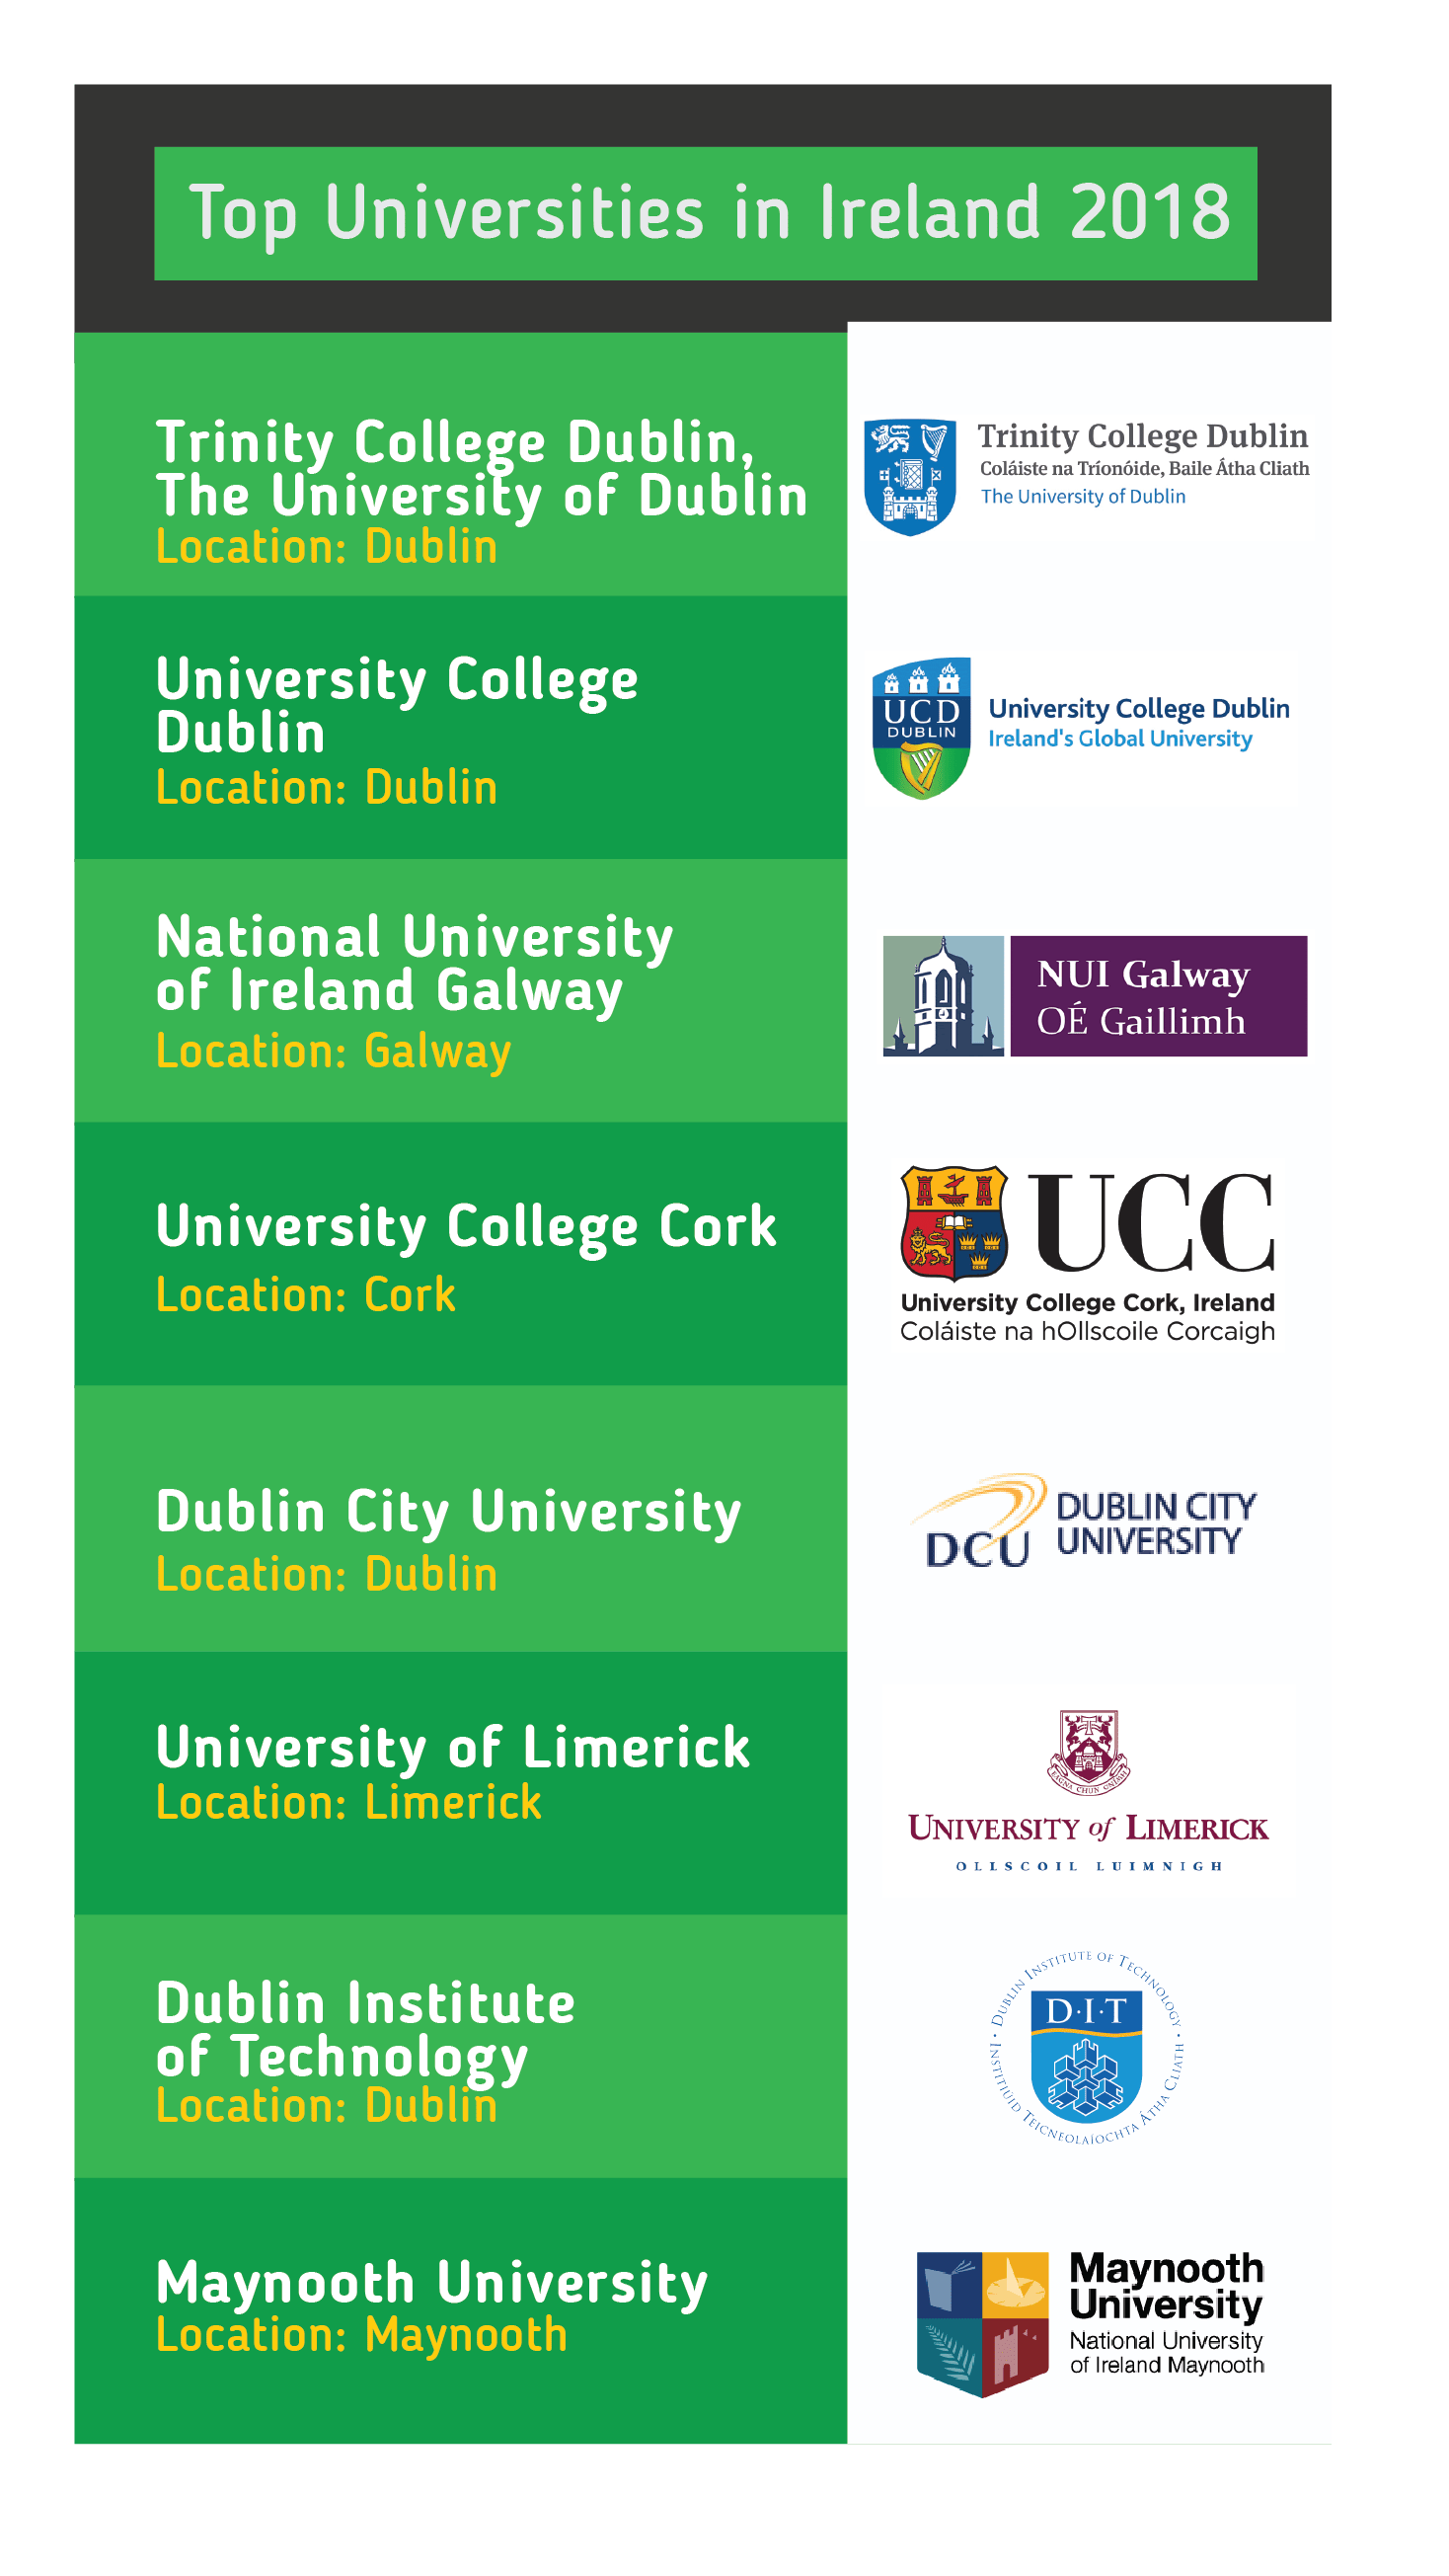 Top Universities in Ireland 2018